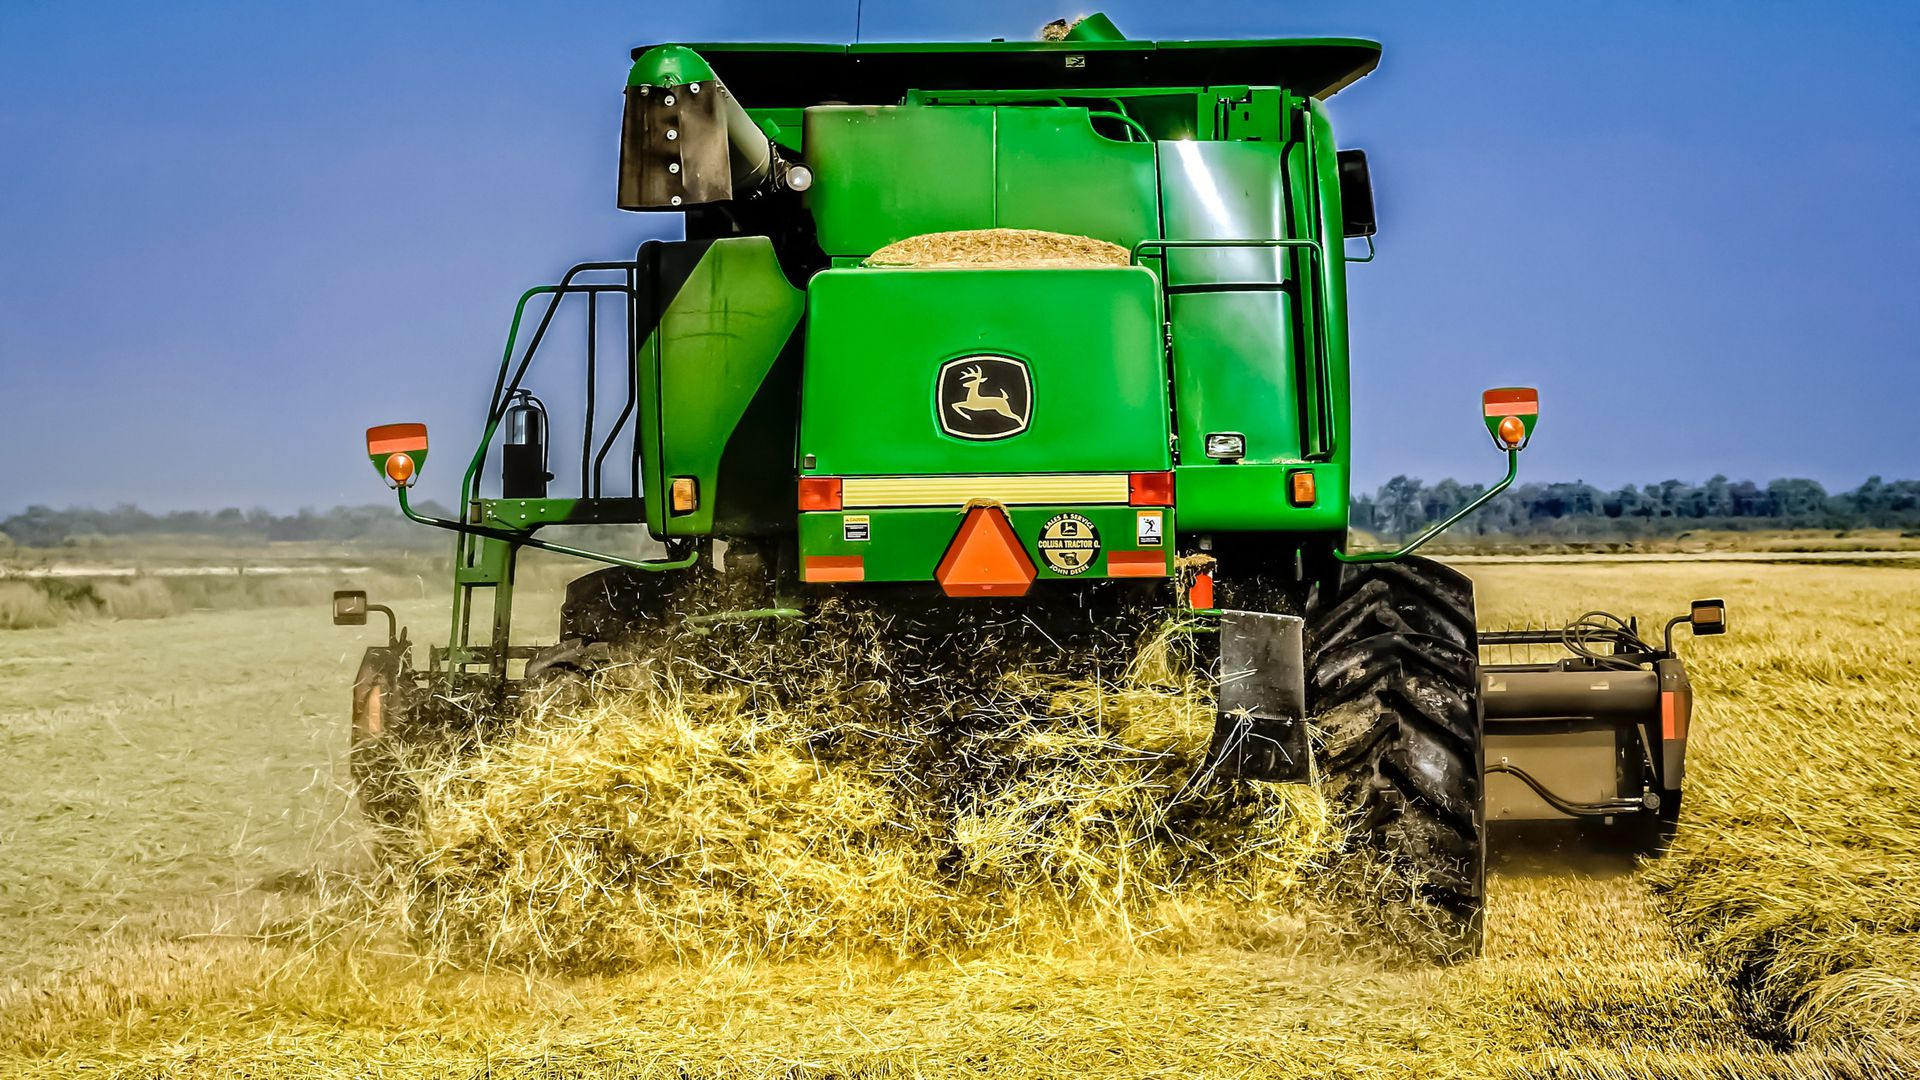 In this image, the back end of a John Deere tractor plows through a field.